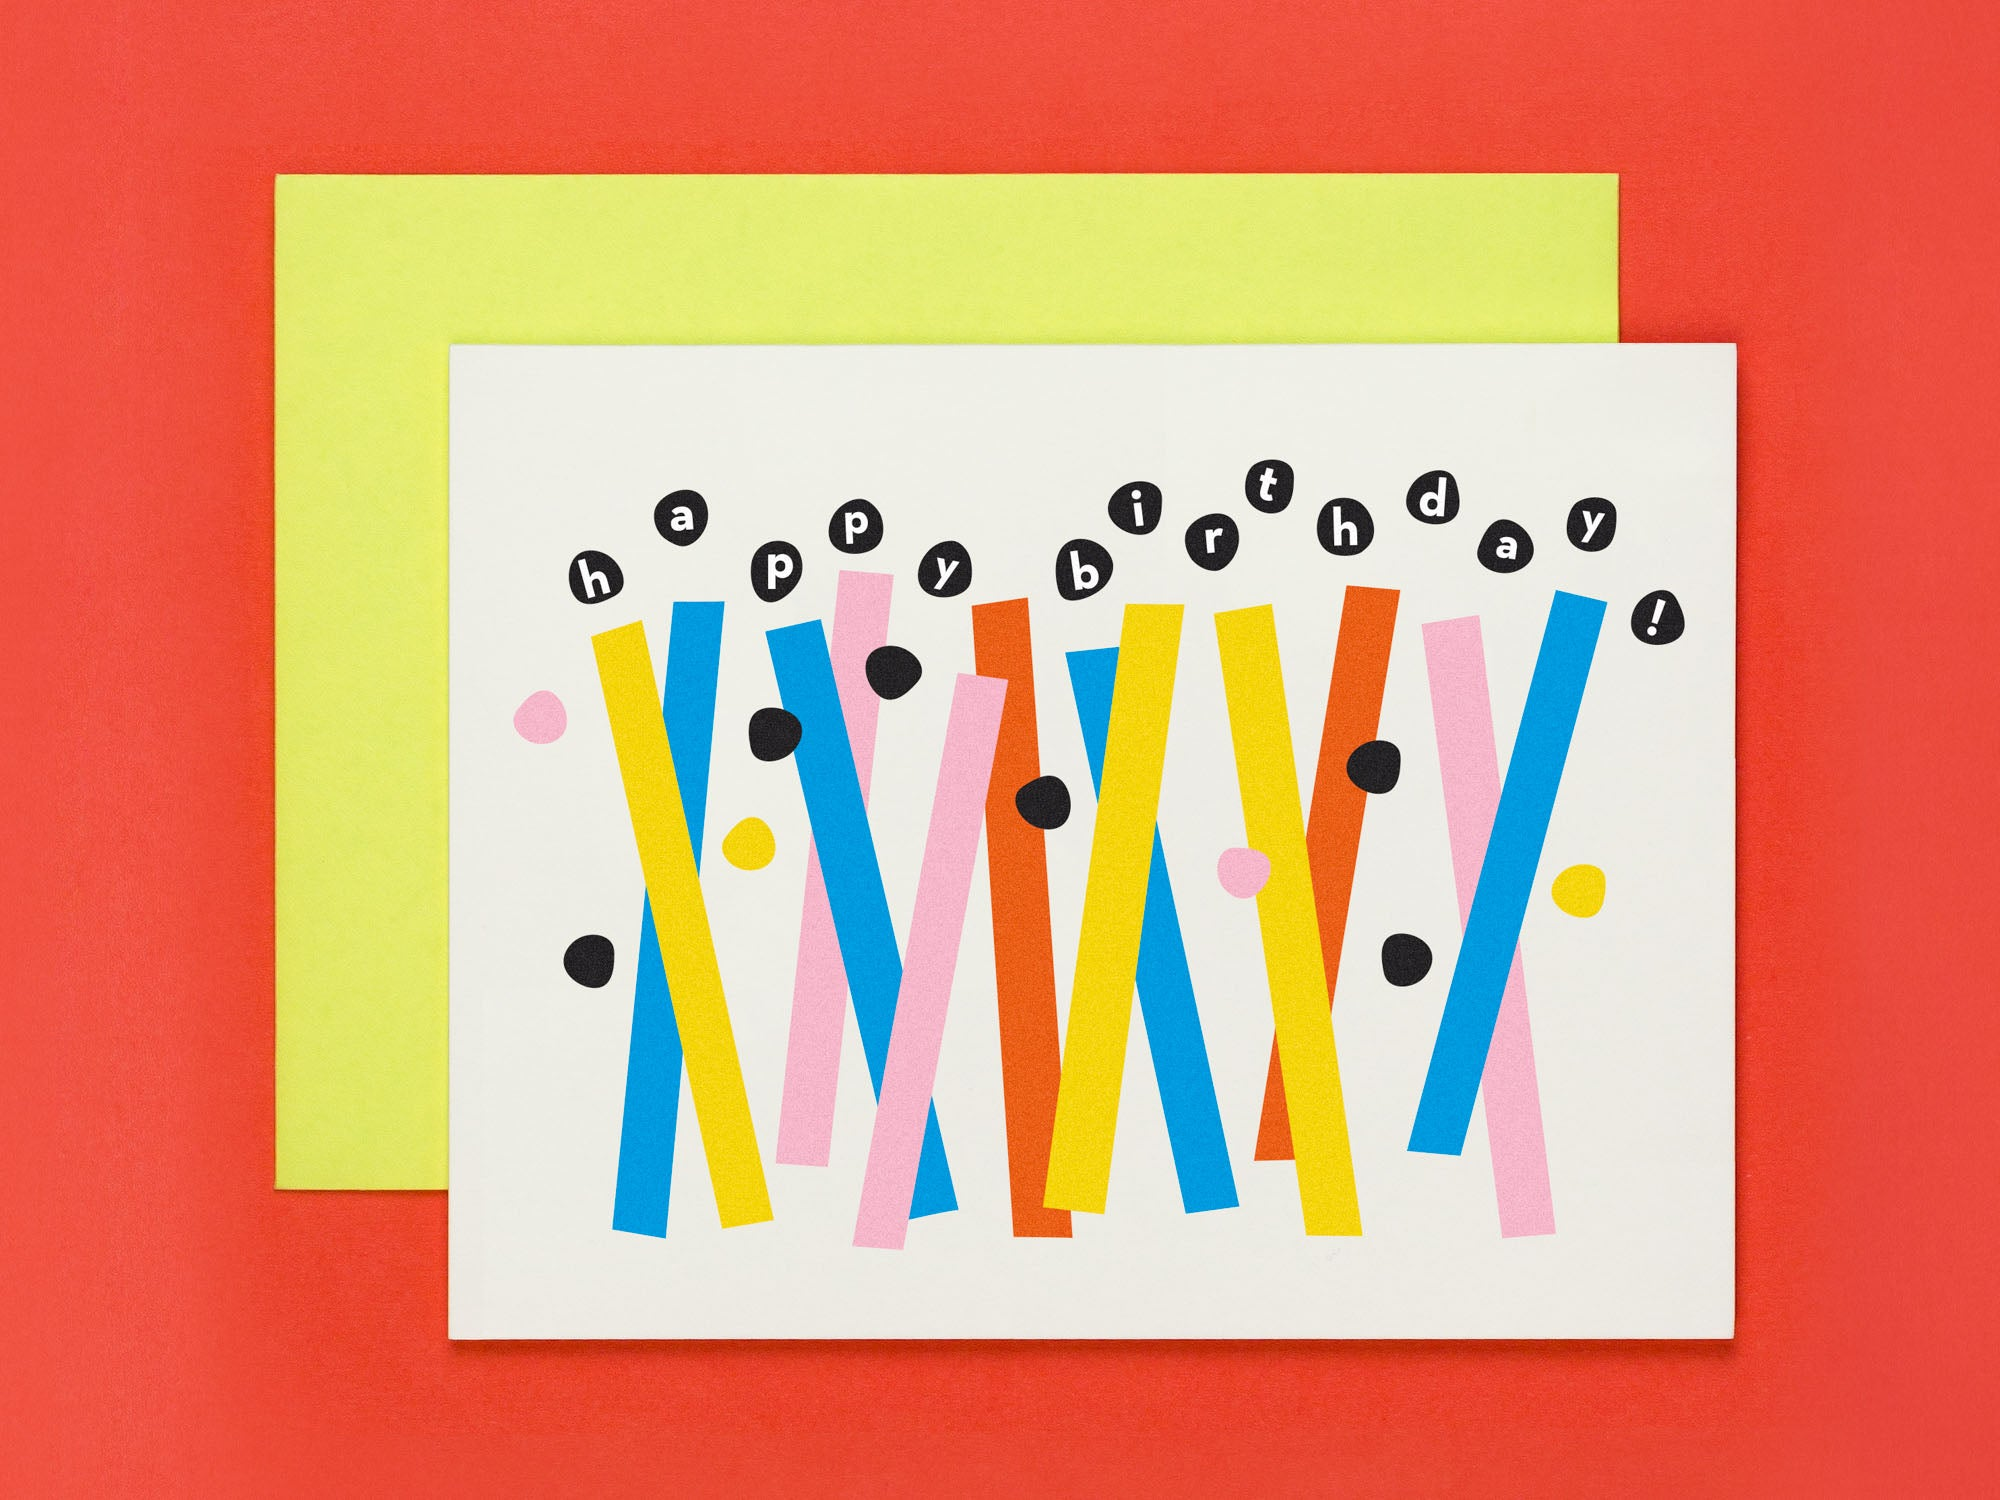 Birthday Card with colorful abstract birthday candles by My Darlin' @mydarlin_bk